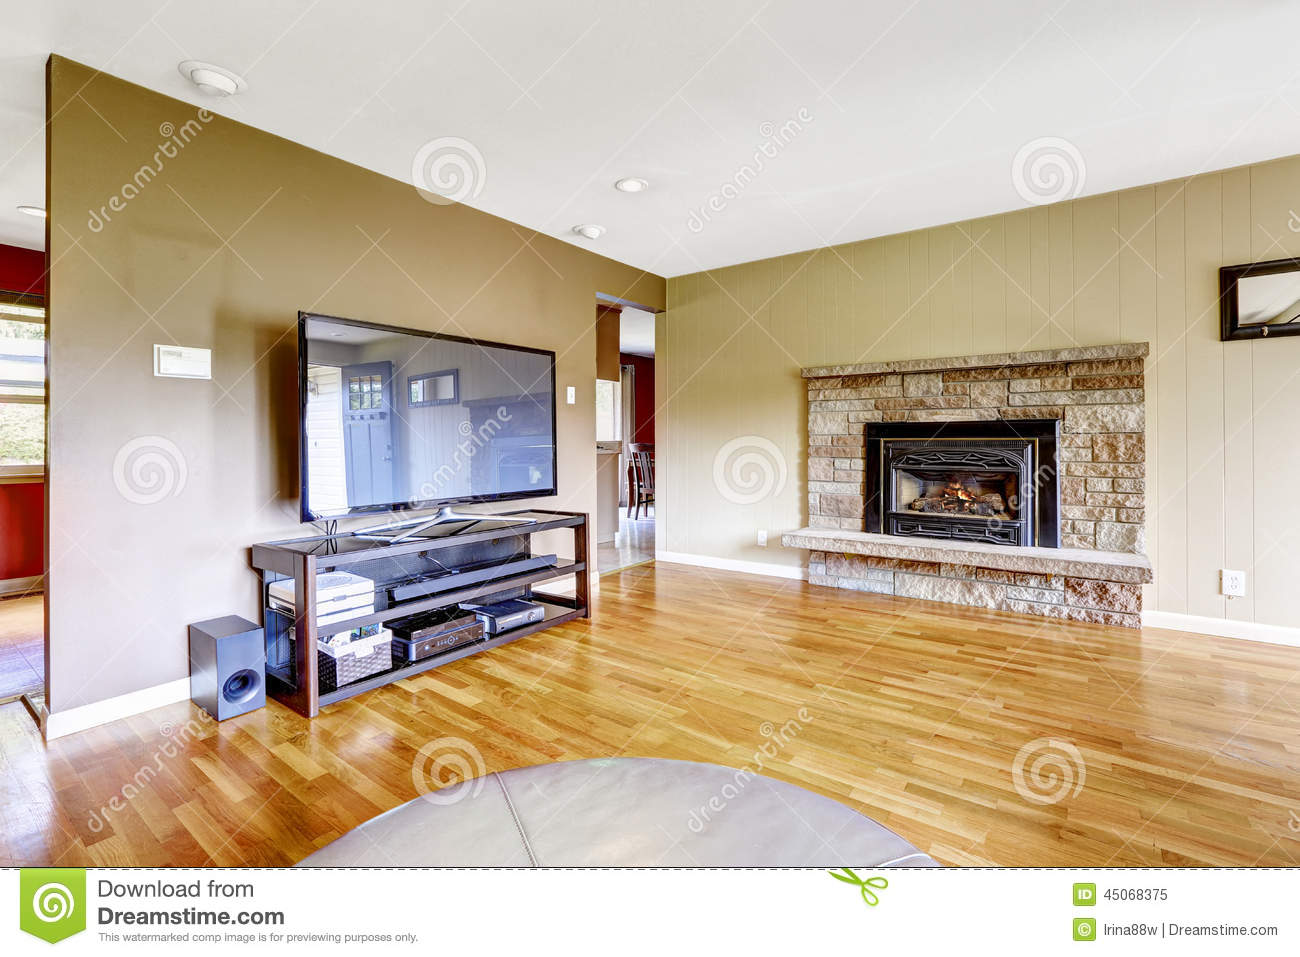 living room with stone trim fireplace and tv stock image - image of